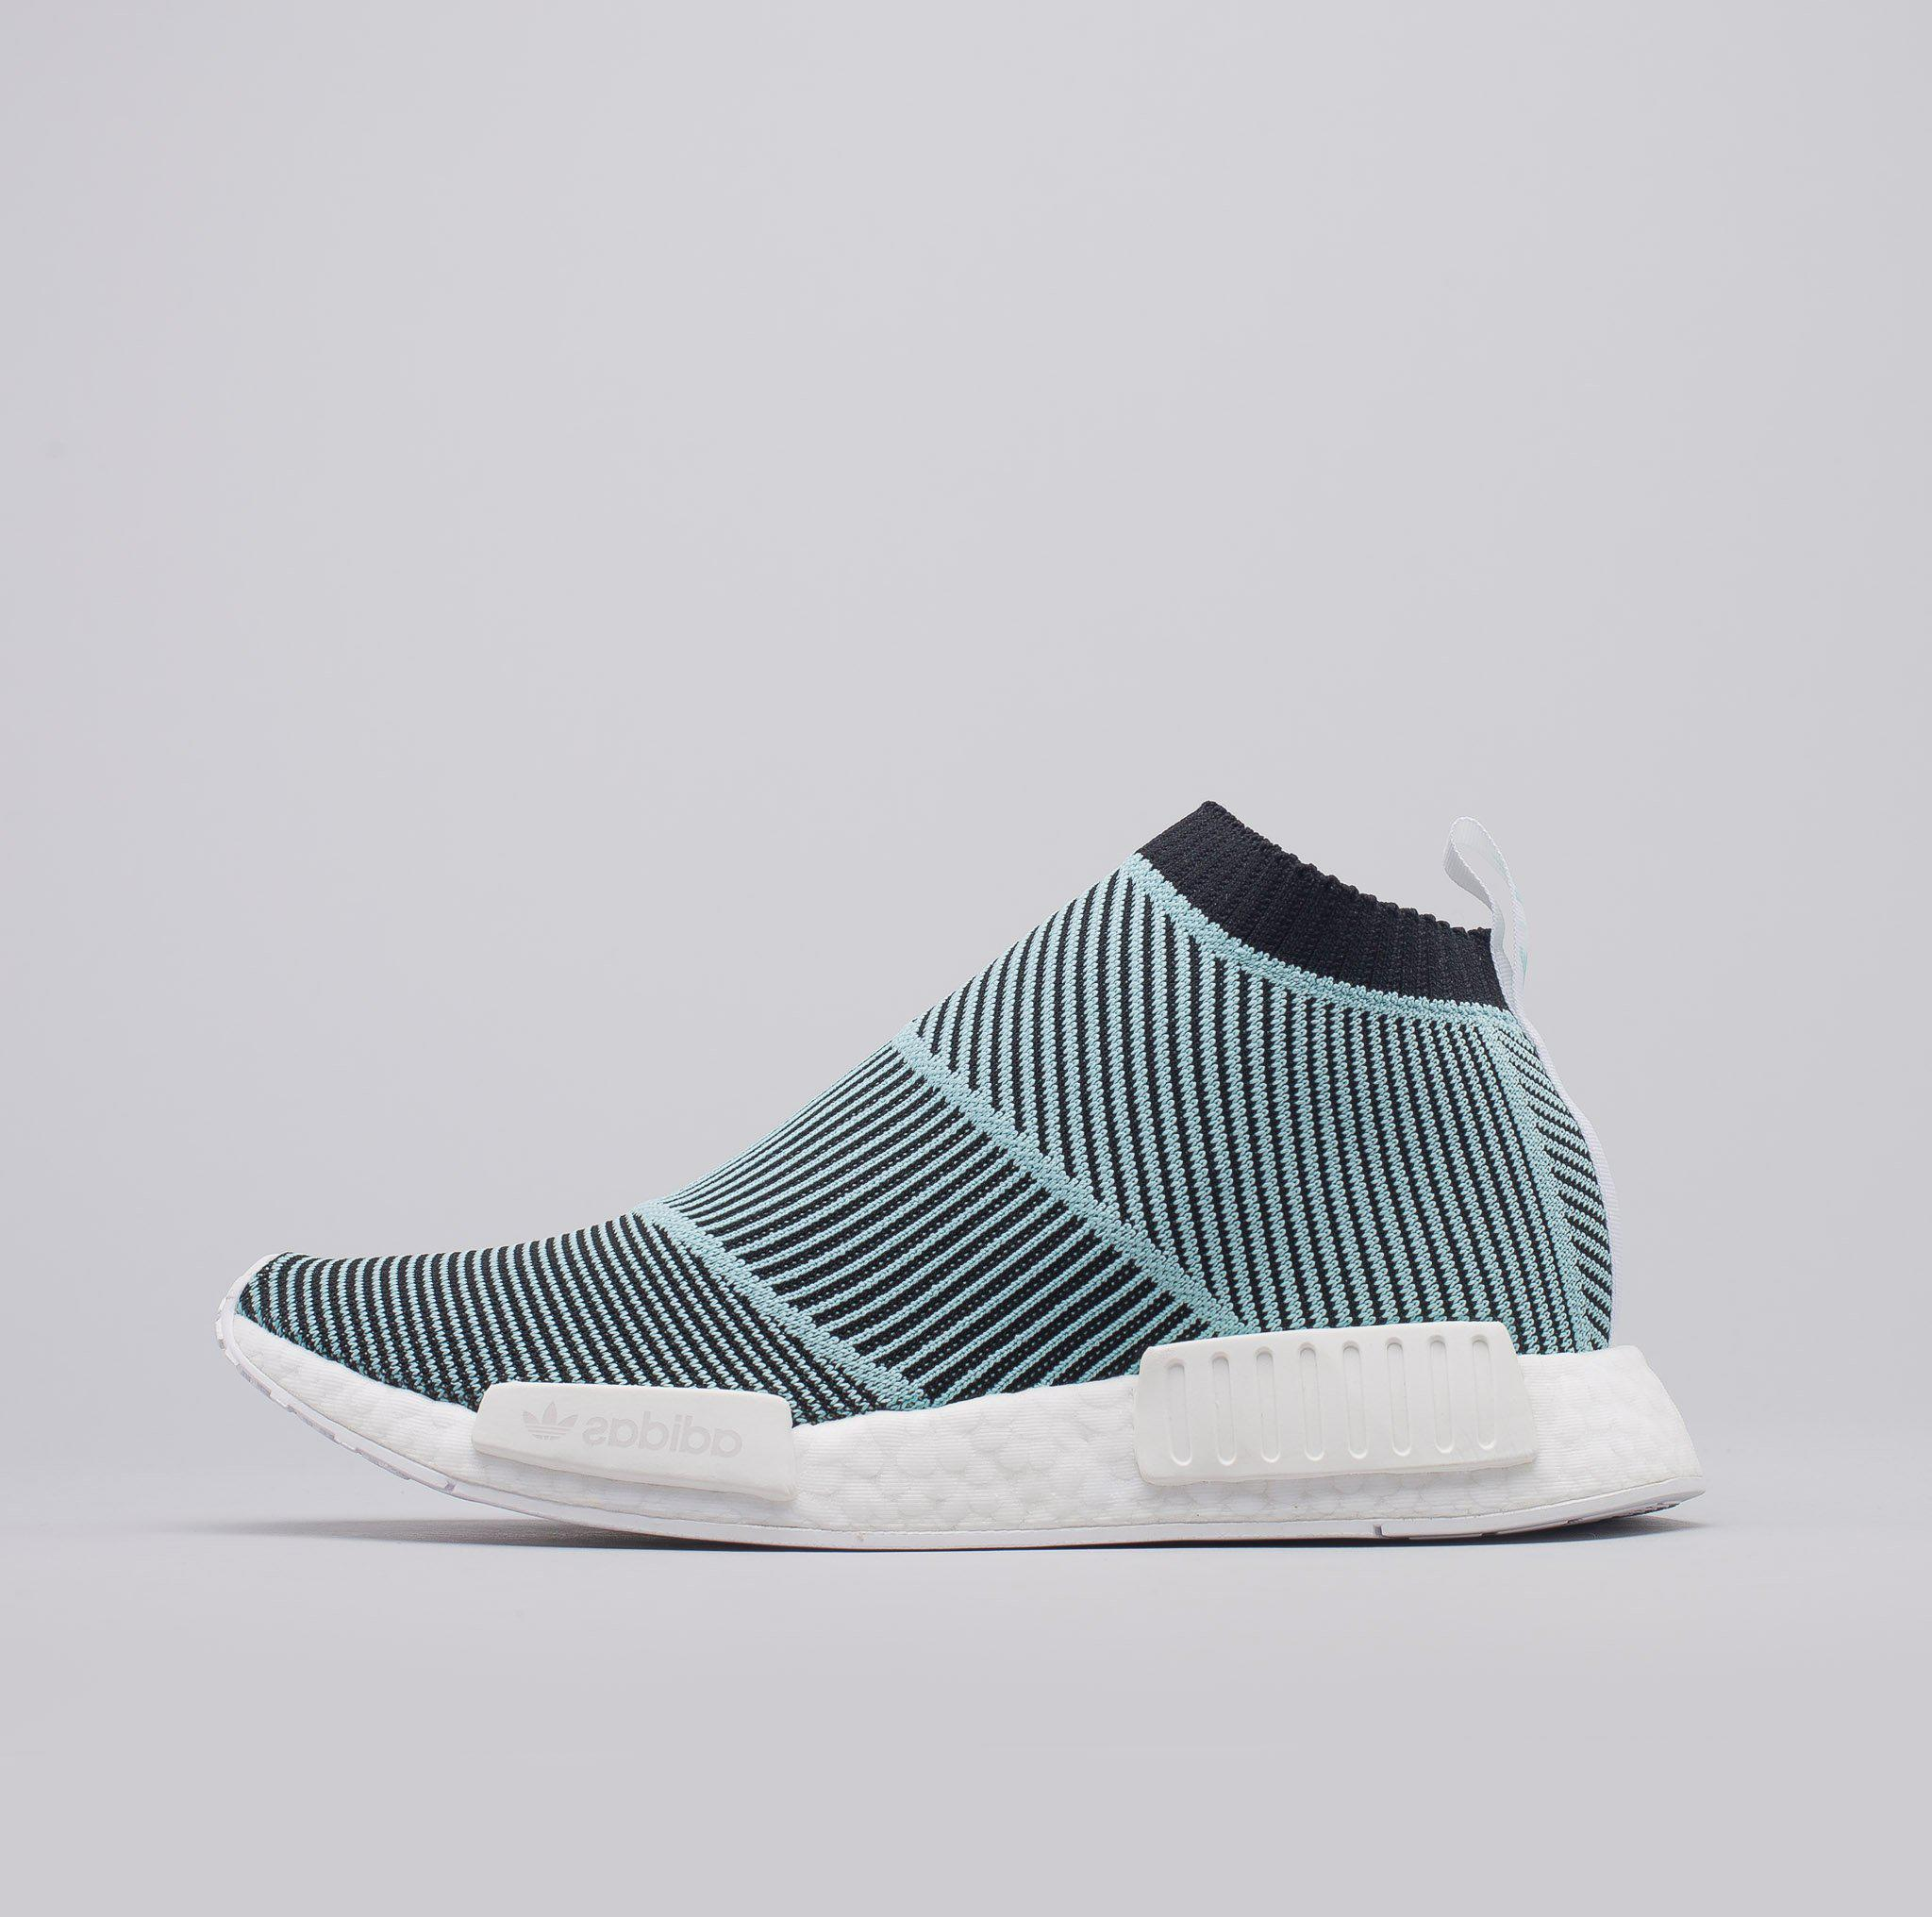 Lyst - adidas Nmd Cs1 Parley Primeknit In Core Black blue in Blue ... a0a74fb20